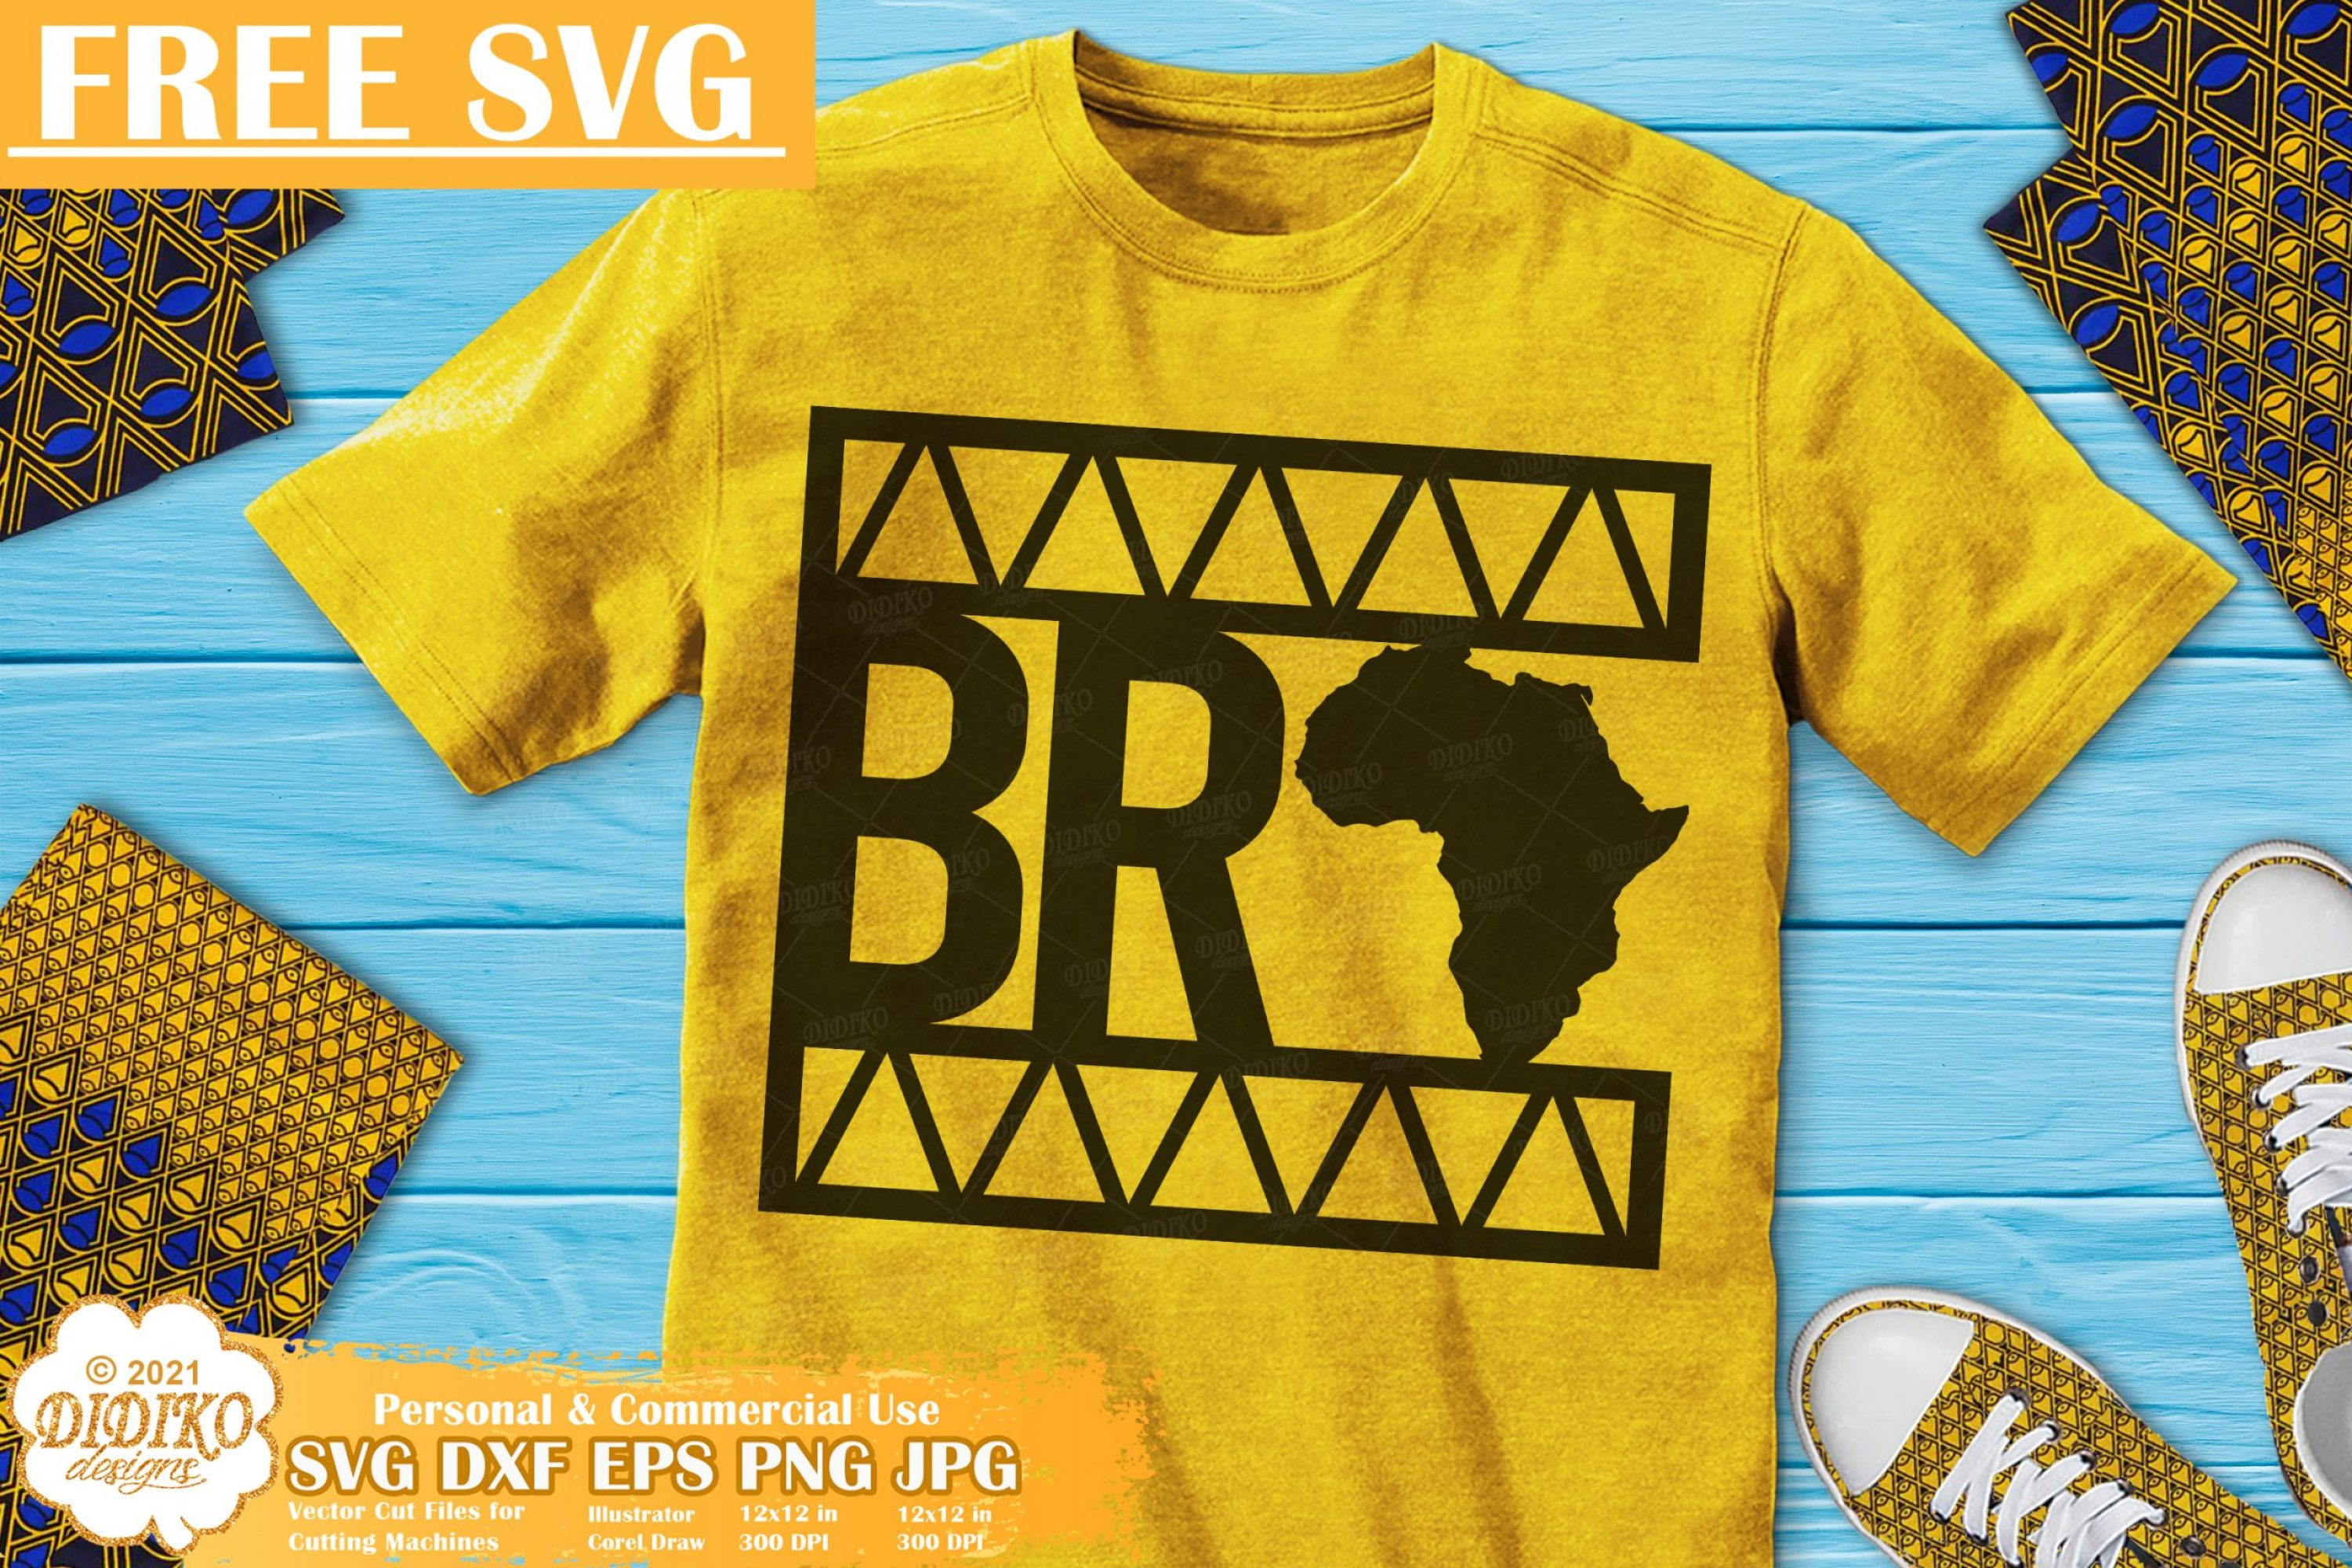 Black Bro Free SVG, Black Boy Svg File, Ankara Svg